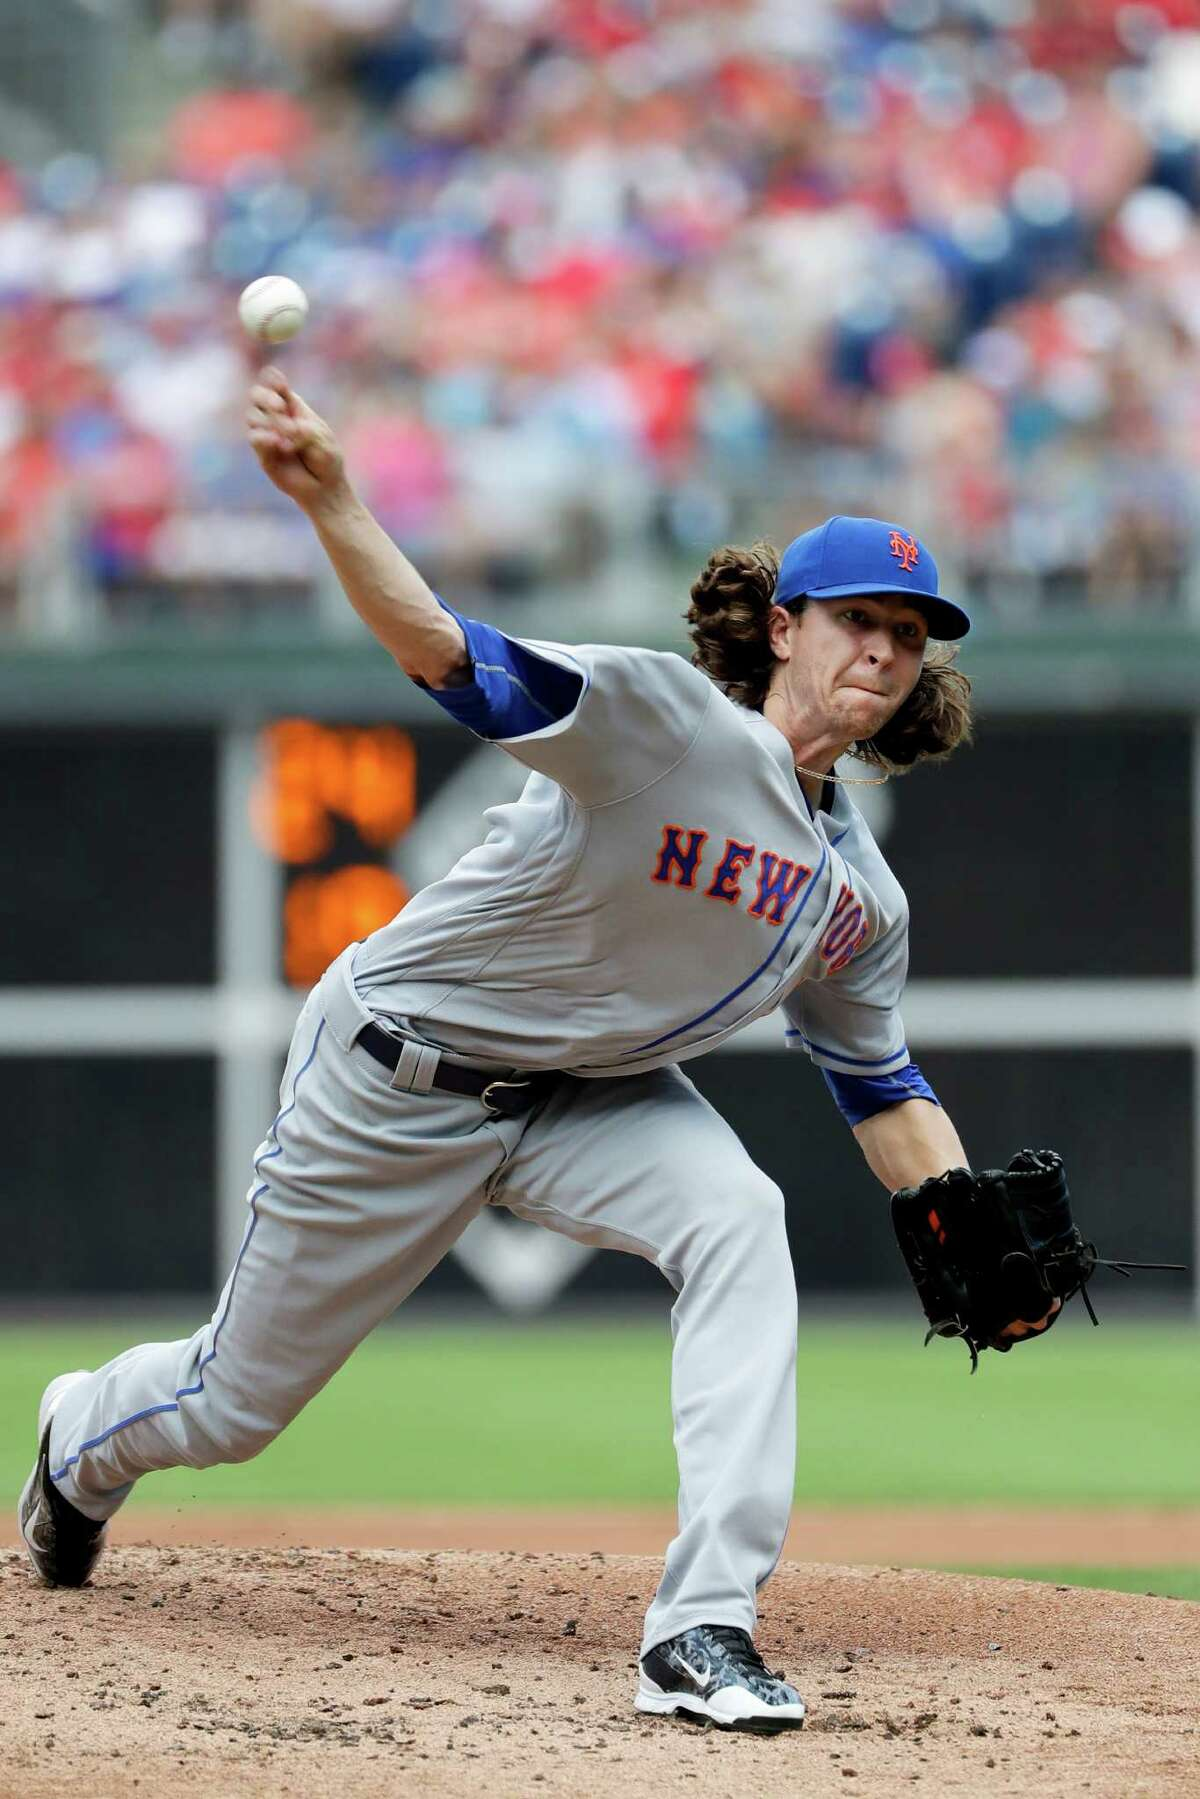 New York Mets' Jacob deGrom pitches during the first inning of a baseball game against the Philadelphia Phillies, Sunday, July 17, 2016, in Philadelphia. (AP Photo/Matt Slocum) ORG XMIT: PXS102